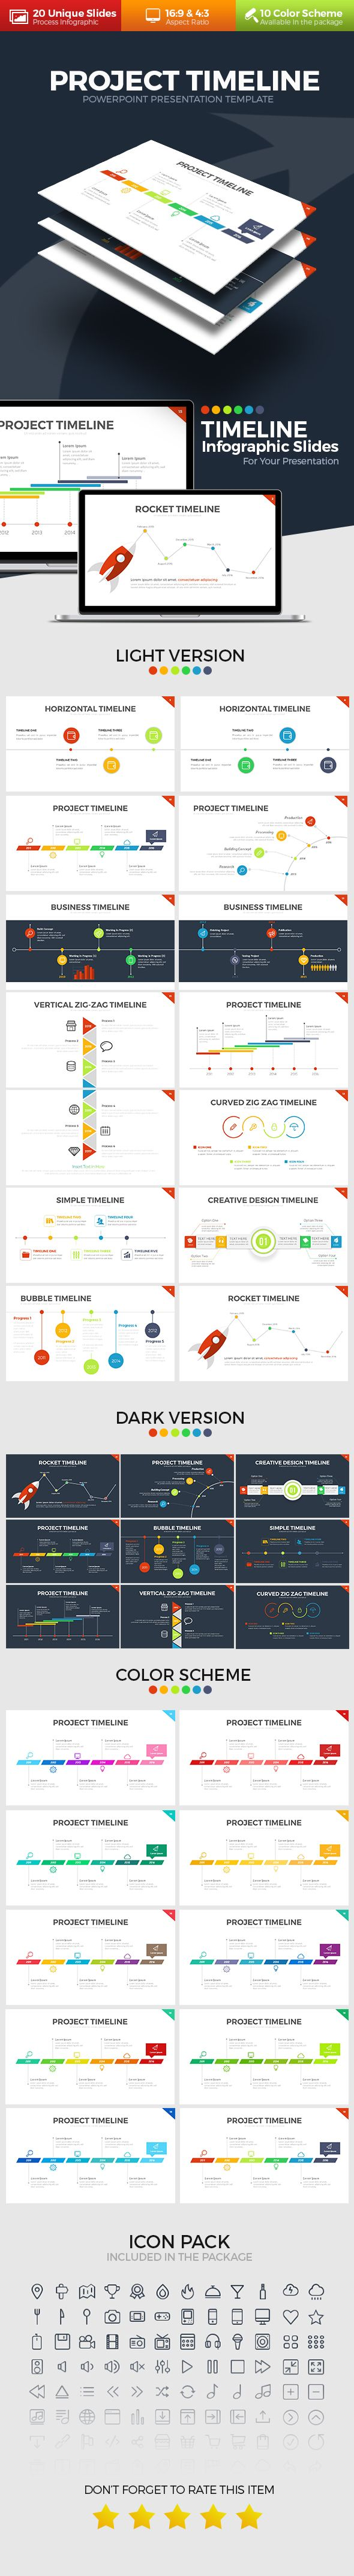 Project Timeline PowerPoint Template. Download here: https://graphicriver.net/item/project-timeline-powerpoint-template/17495263?ref=ksioks